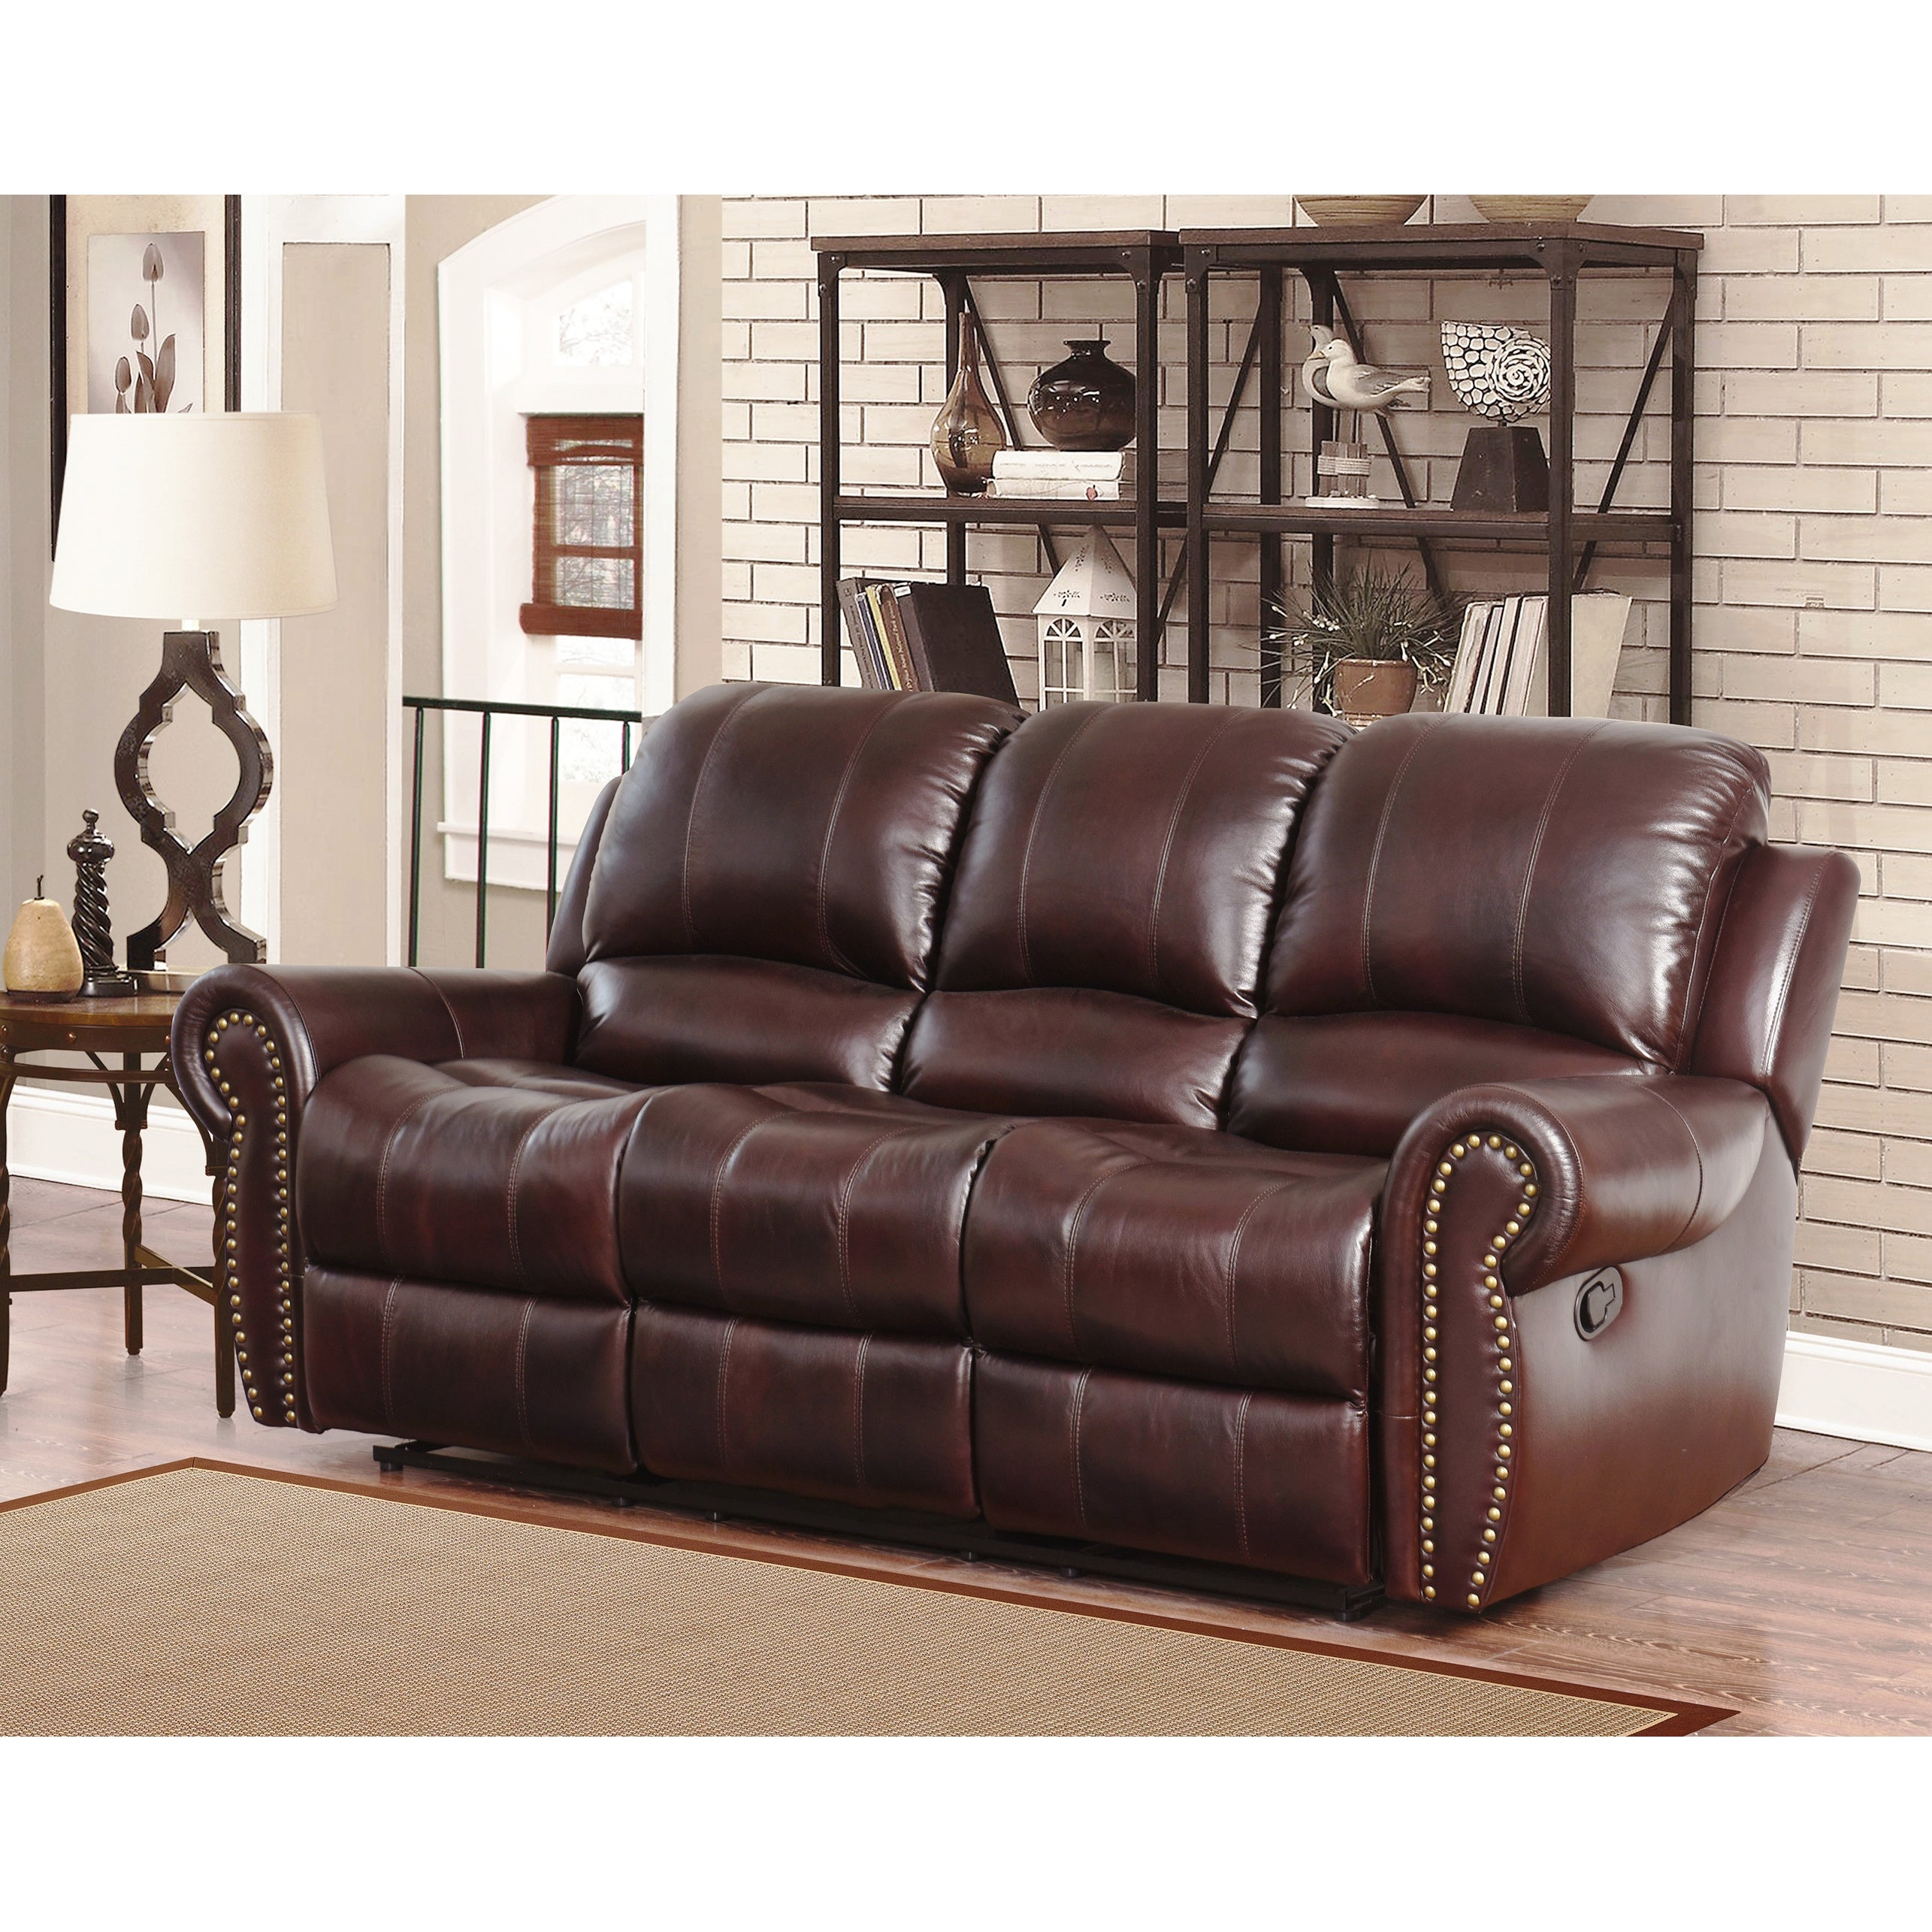 Abbyson Broadway Top Grain Leather Reclining Sofa